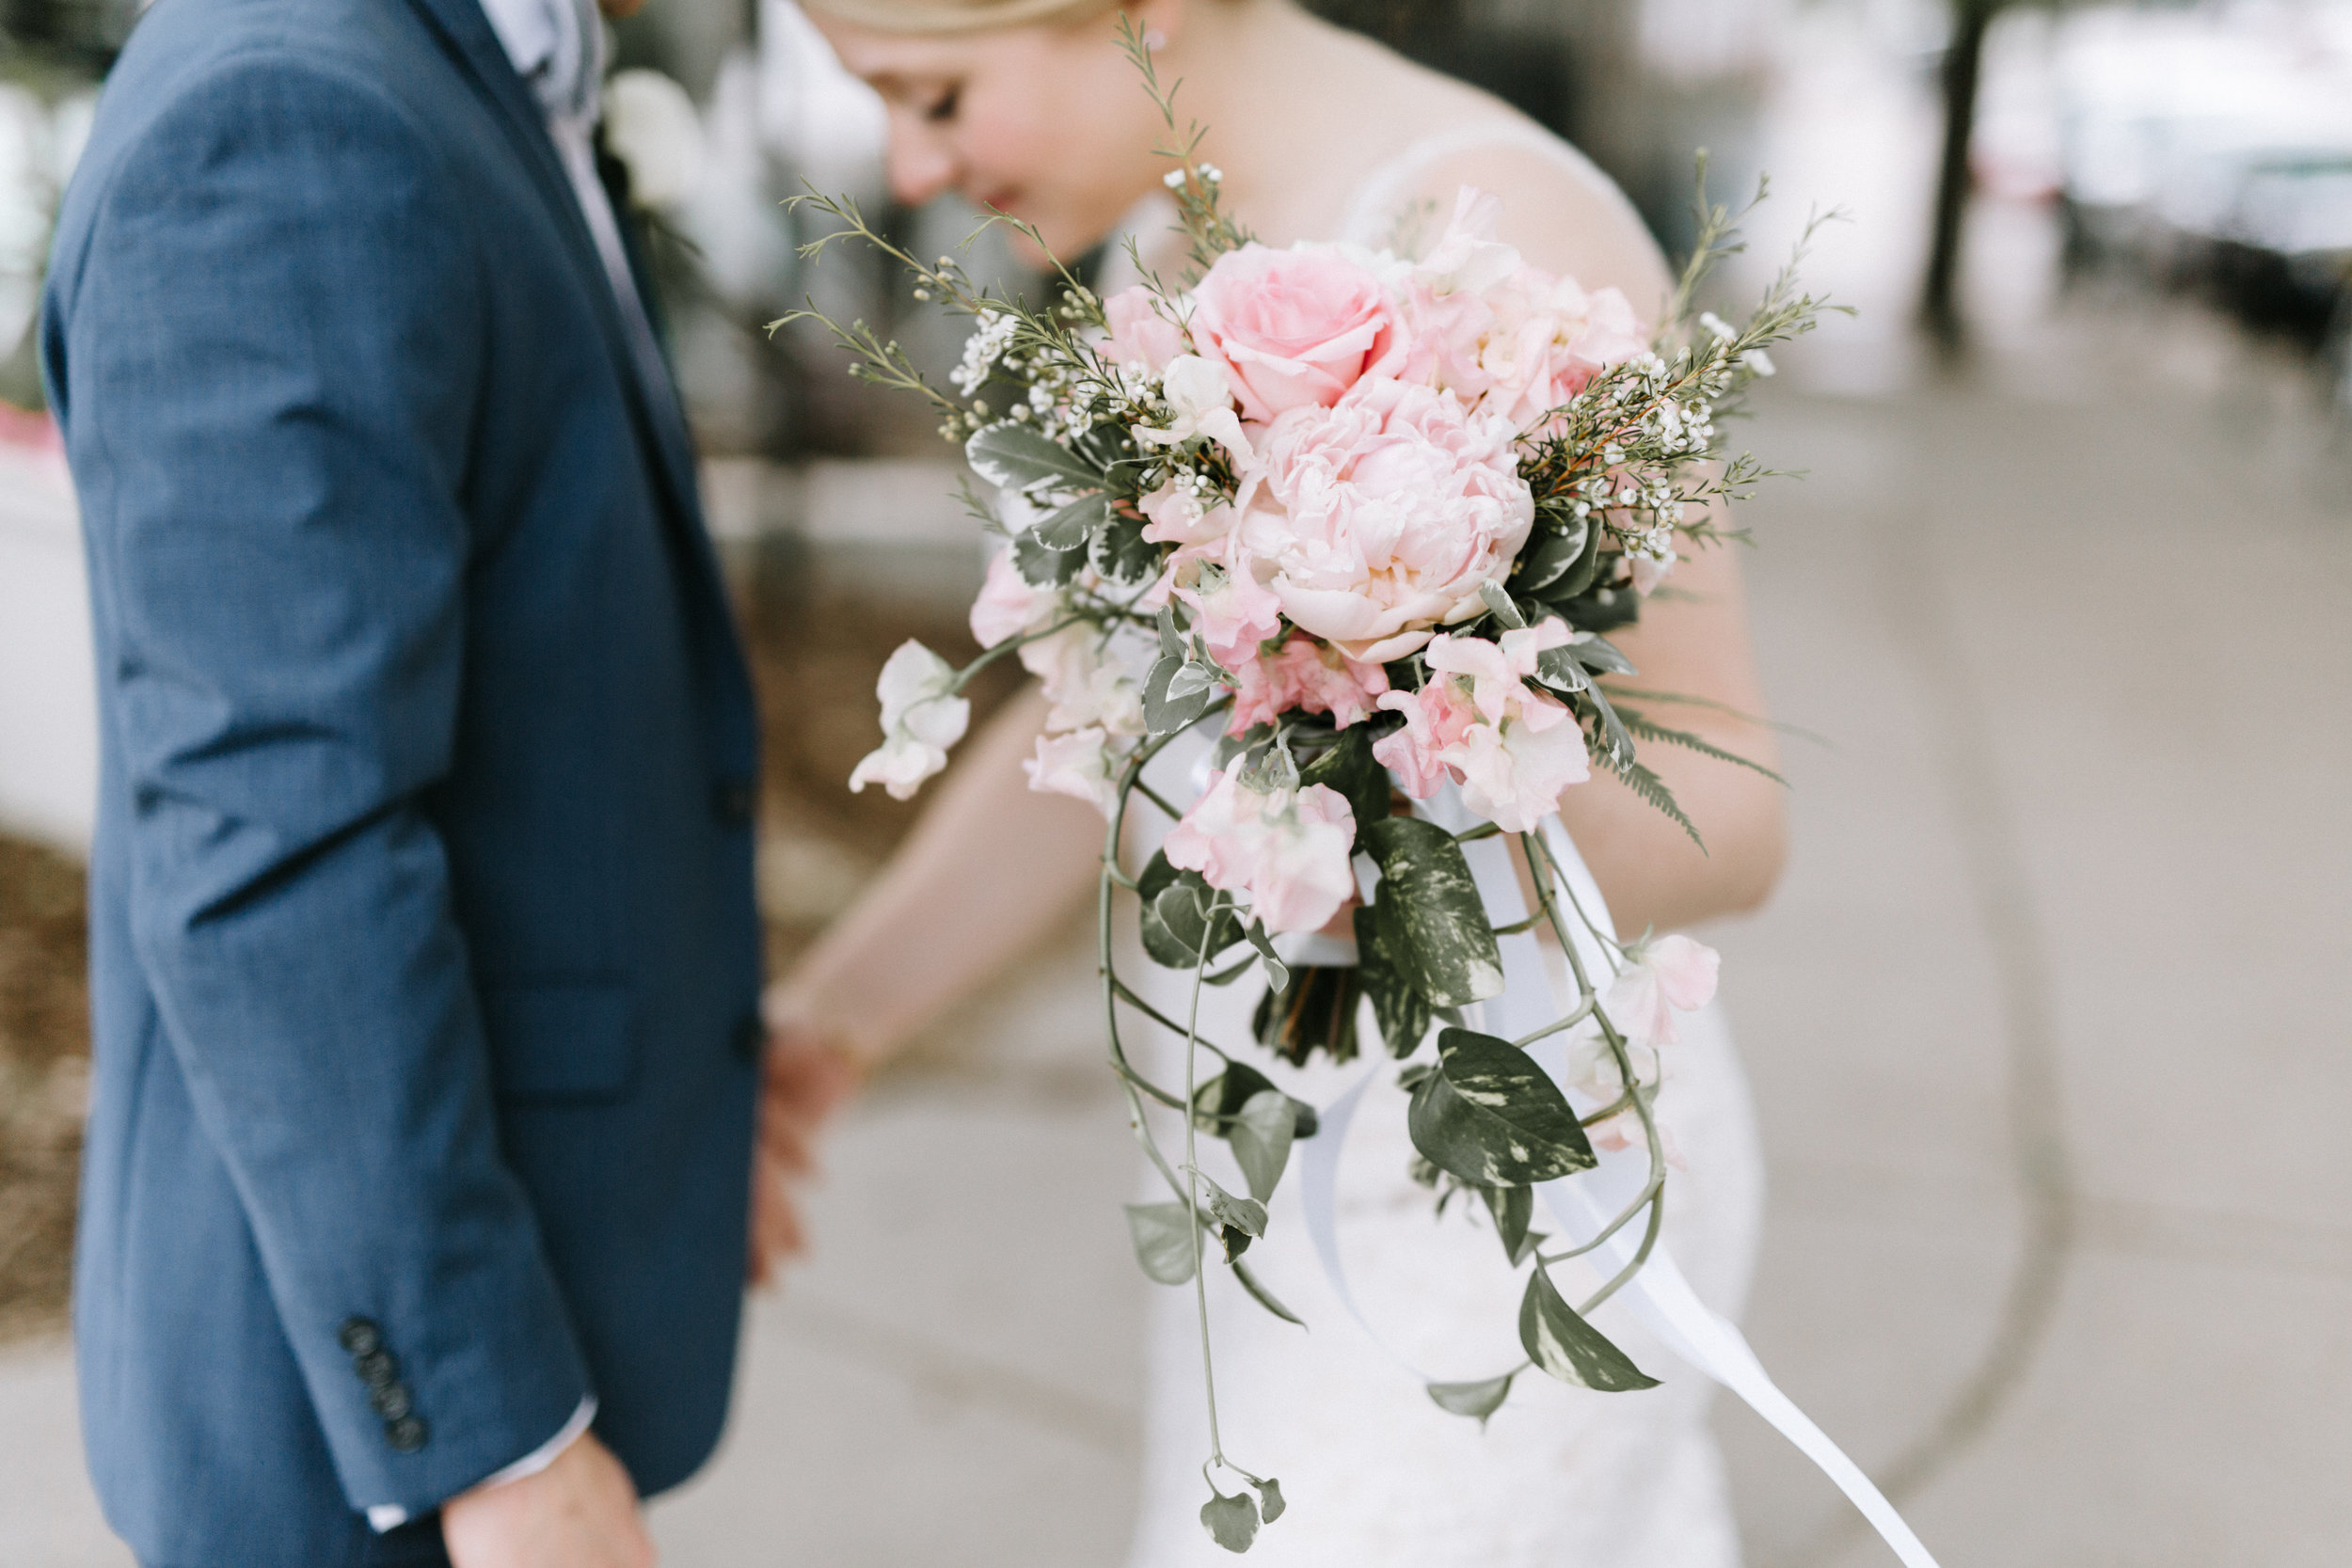 Lydia + Michael Sixpence Events day of coordinating client | Loring Social | Kate Becker Photography | Mann Frau Videography | Minted wedding stationery | bridal bouquet pink roses and peonies and wax flowers with ivy